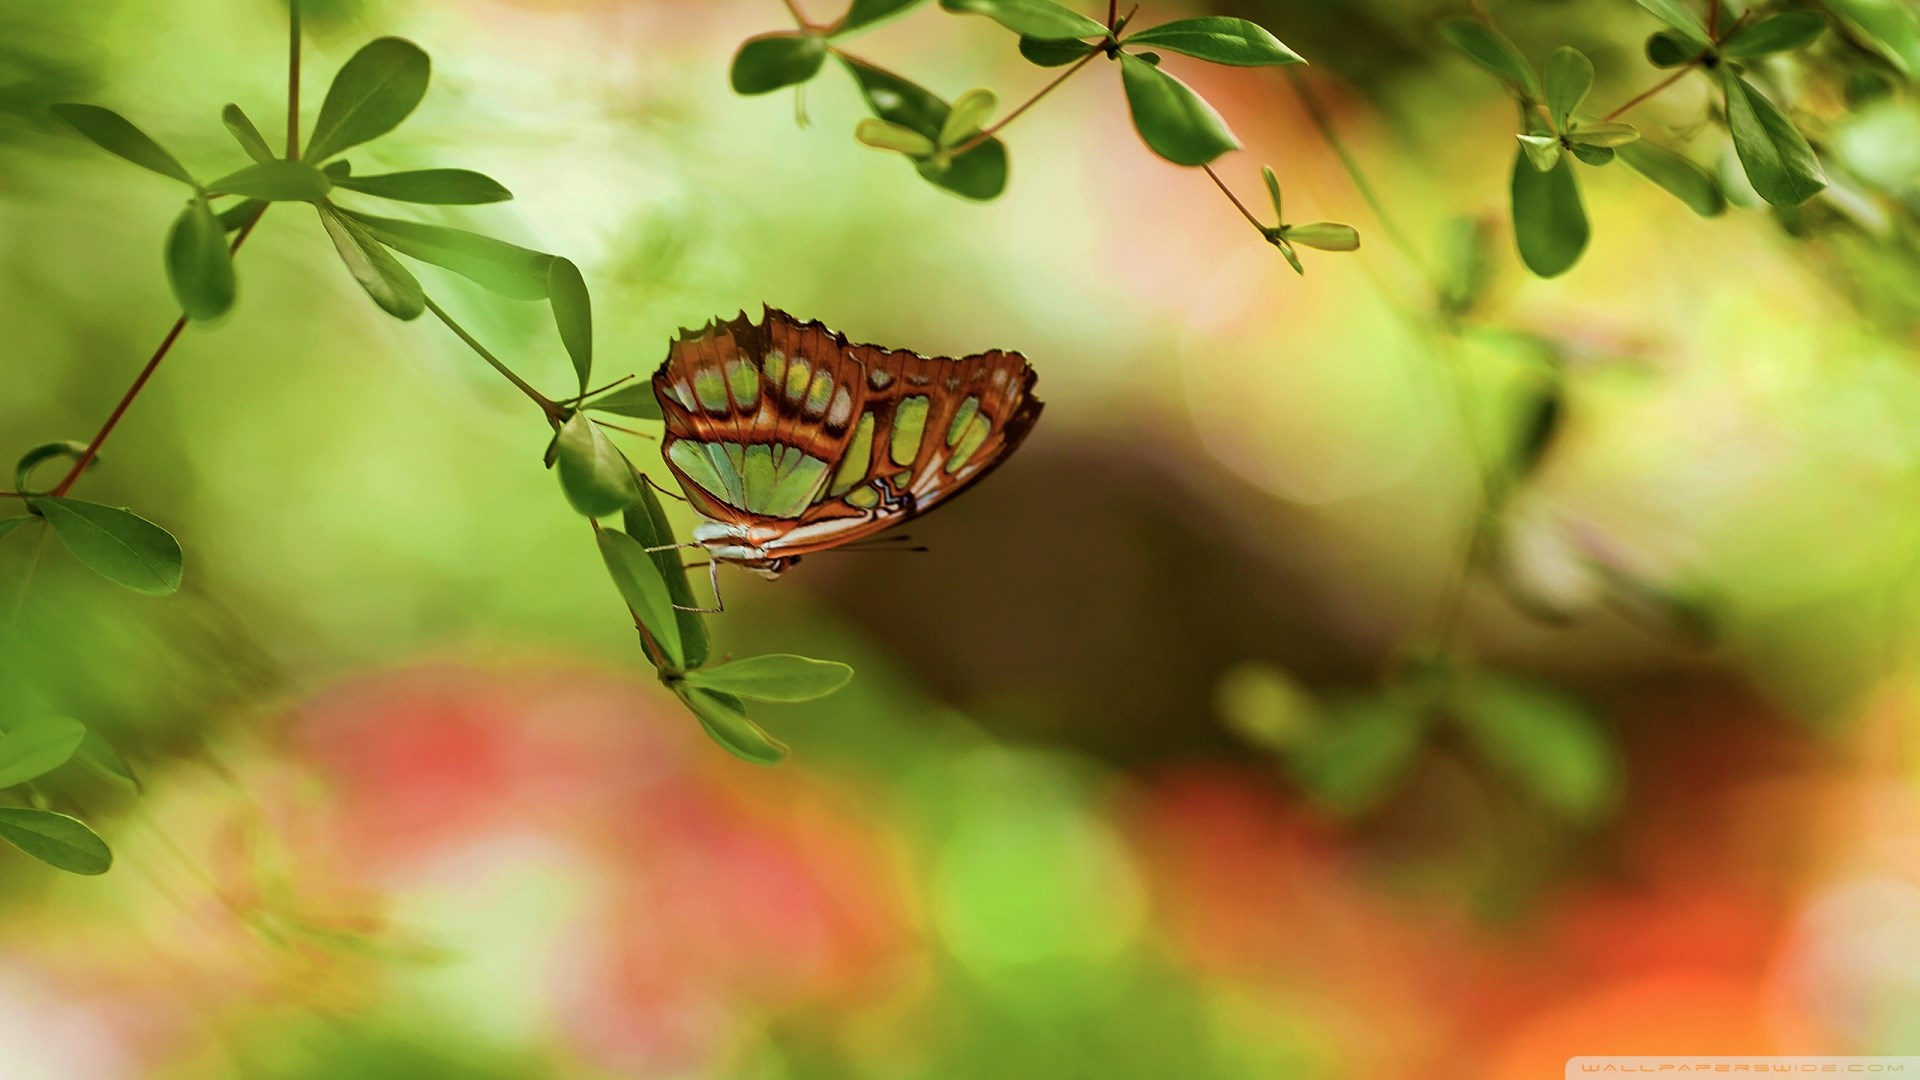 colorful-butterfly-girly-hd-1920x1080-wallpaper-wpc5803582